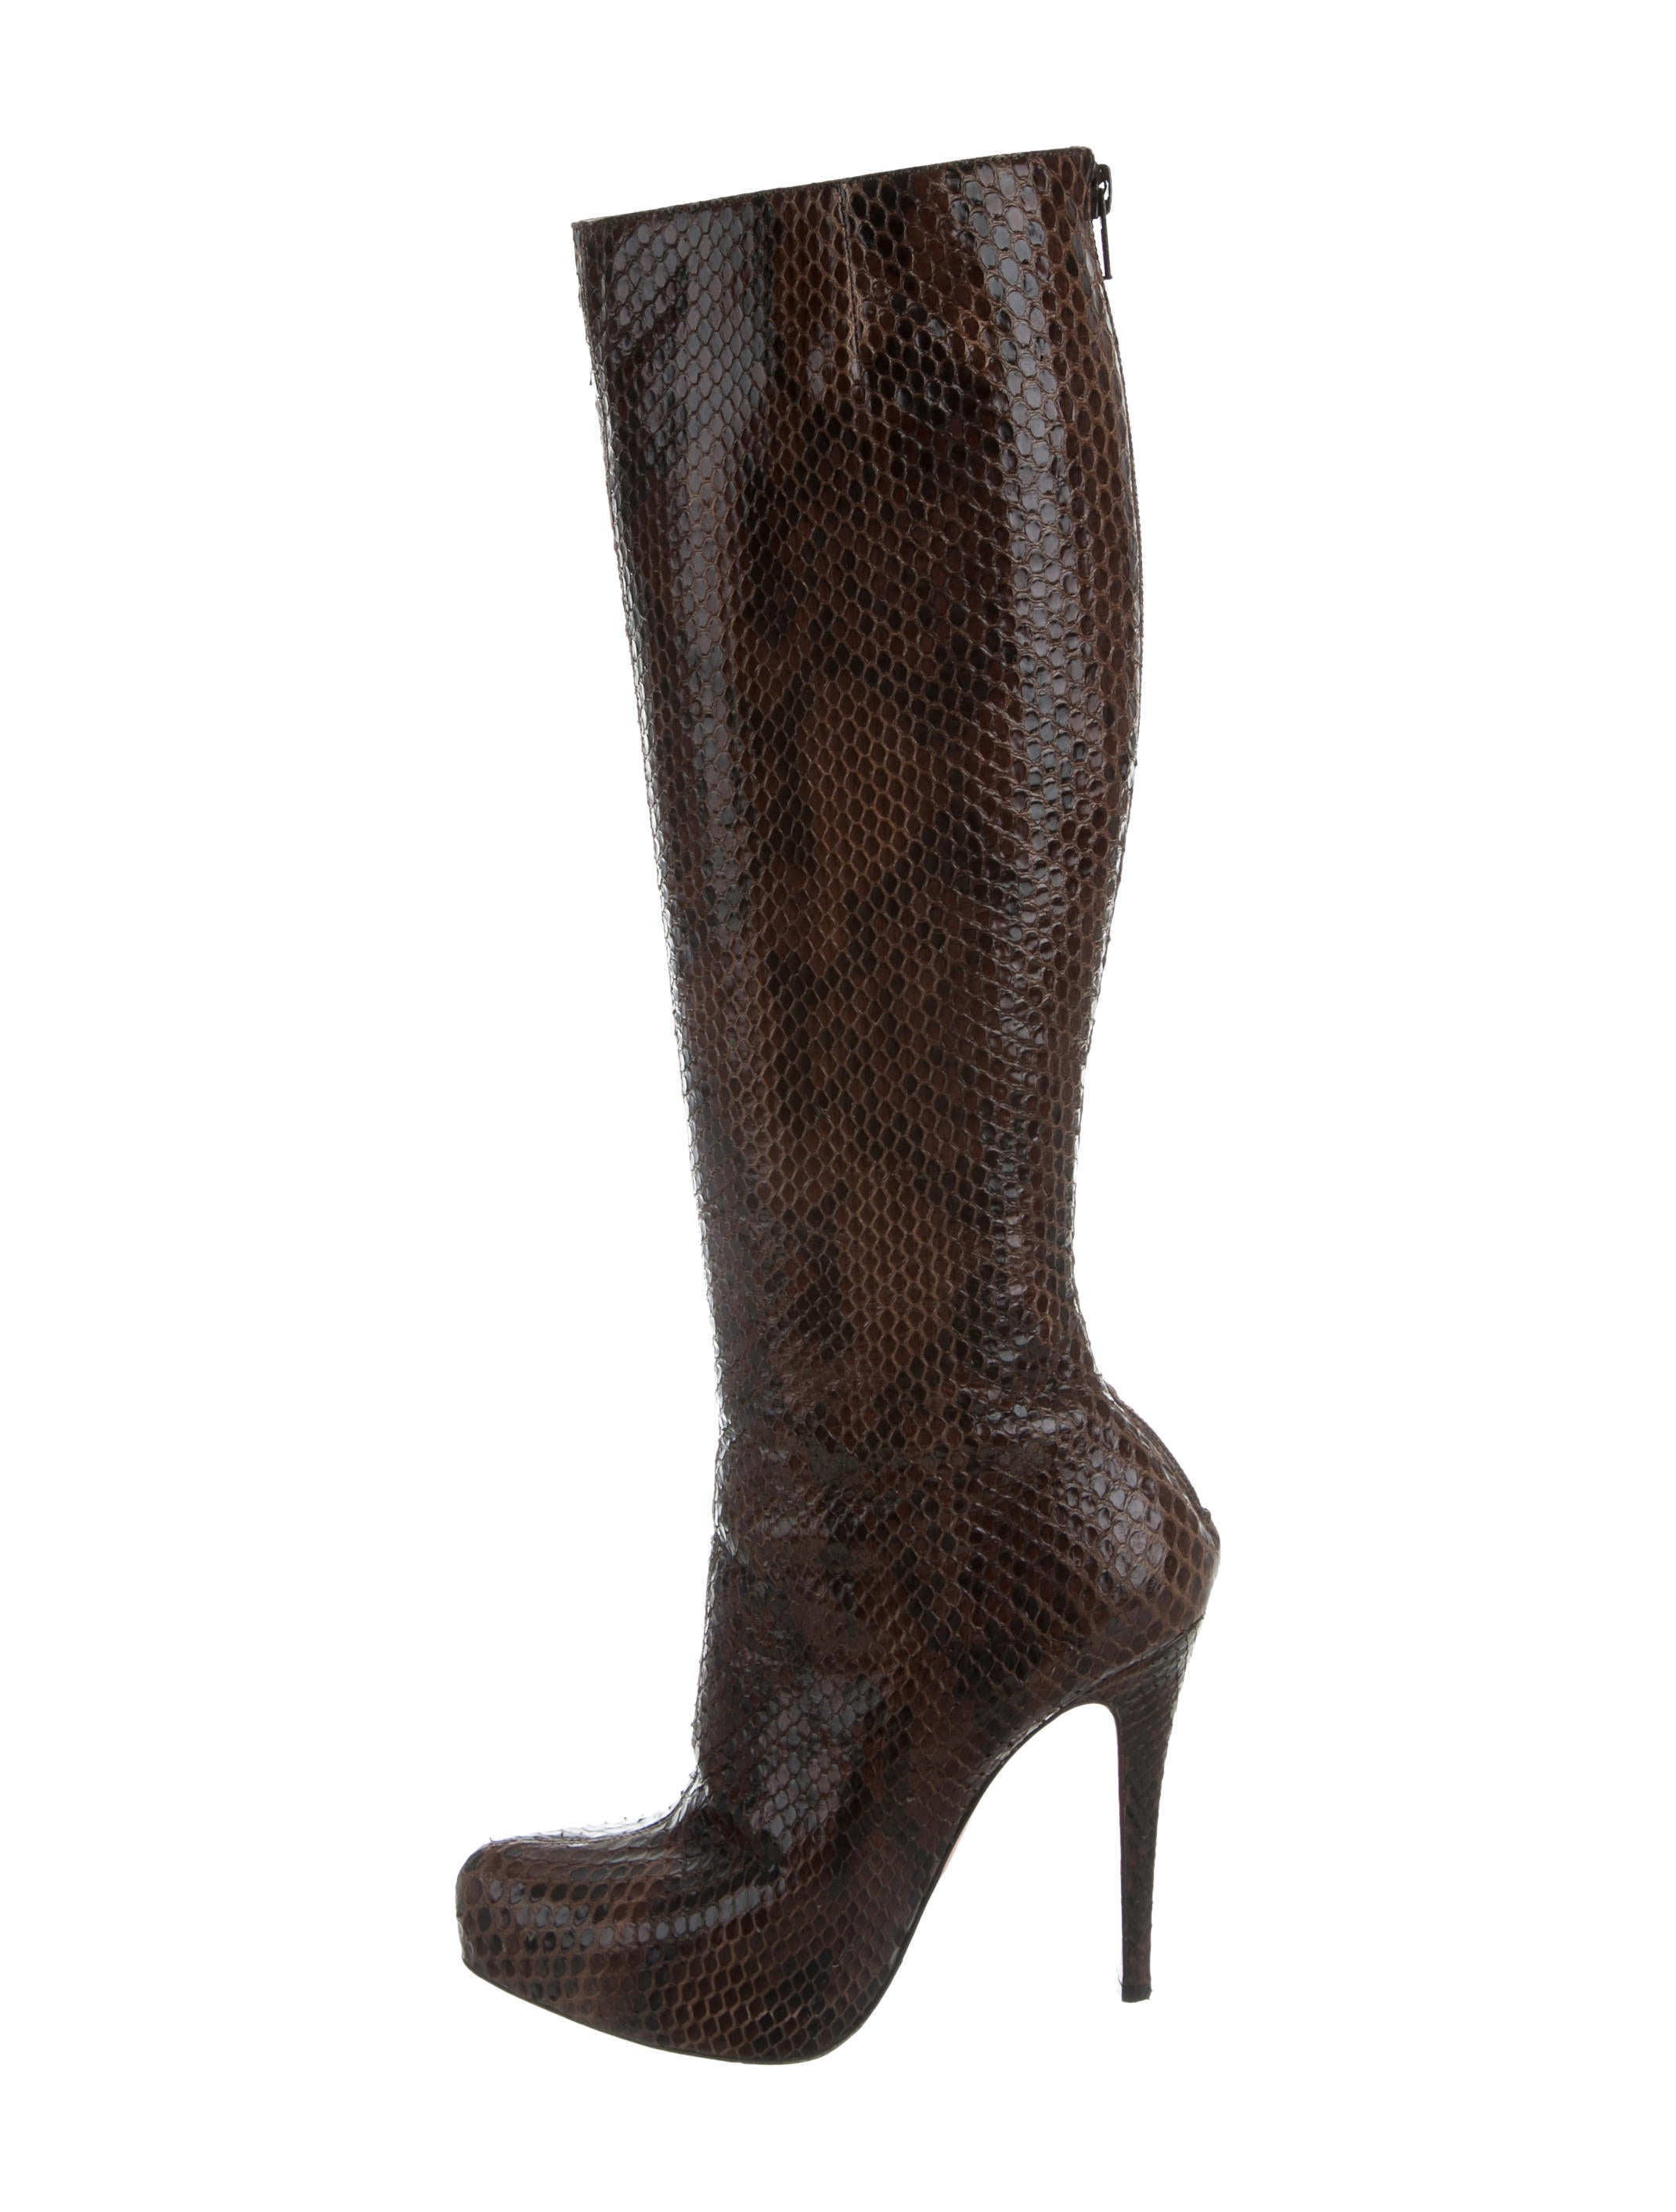 Christian Louboutin Python Knee High Boots Shoes  : CHT652741enlarged from www.therealreal.com size 2141 x 2826 jpeg 281kB